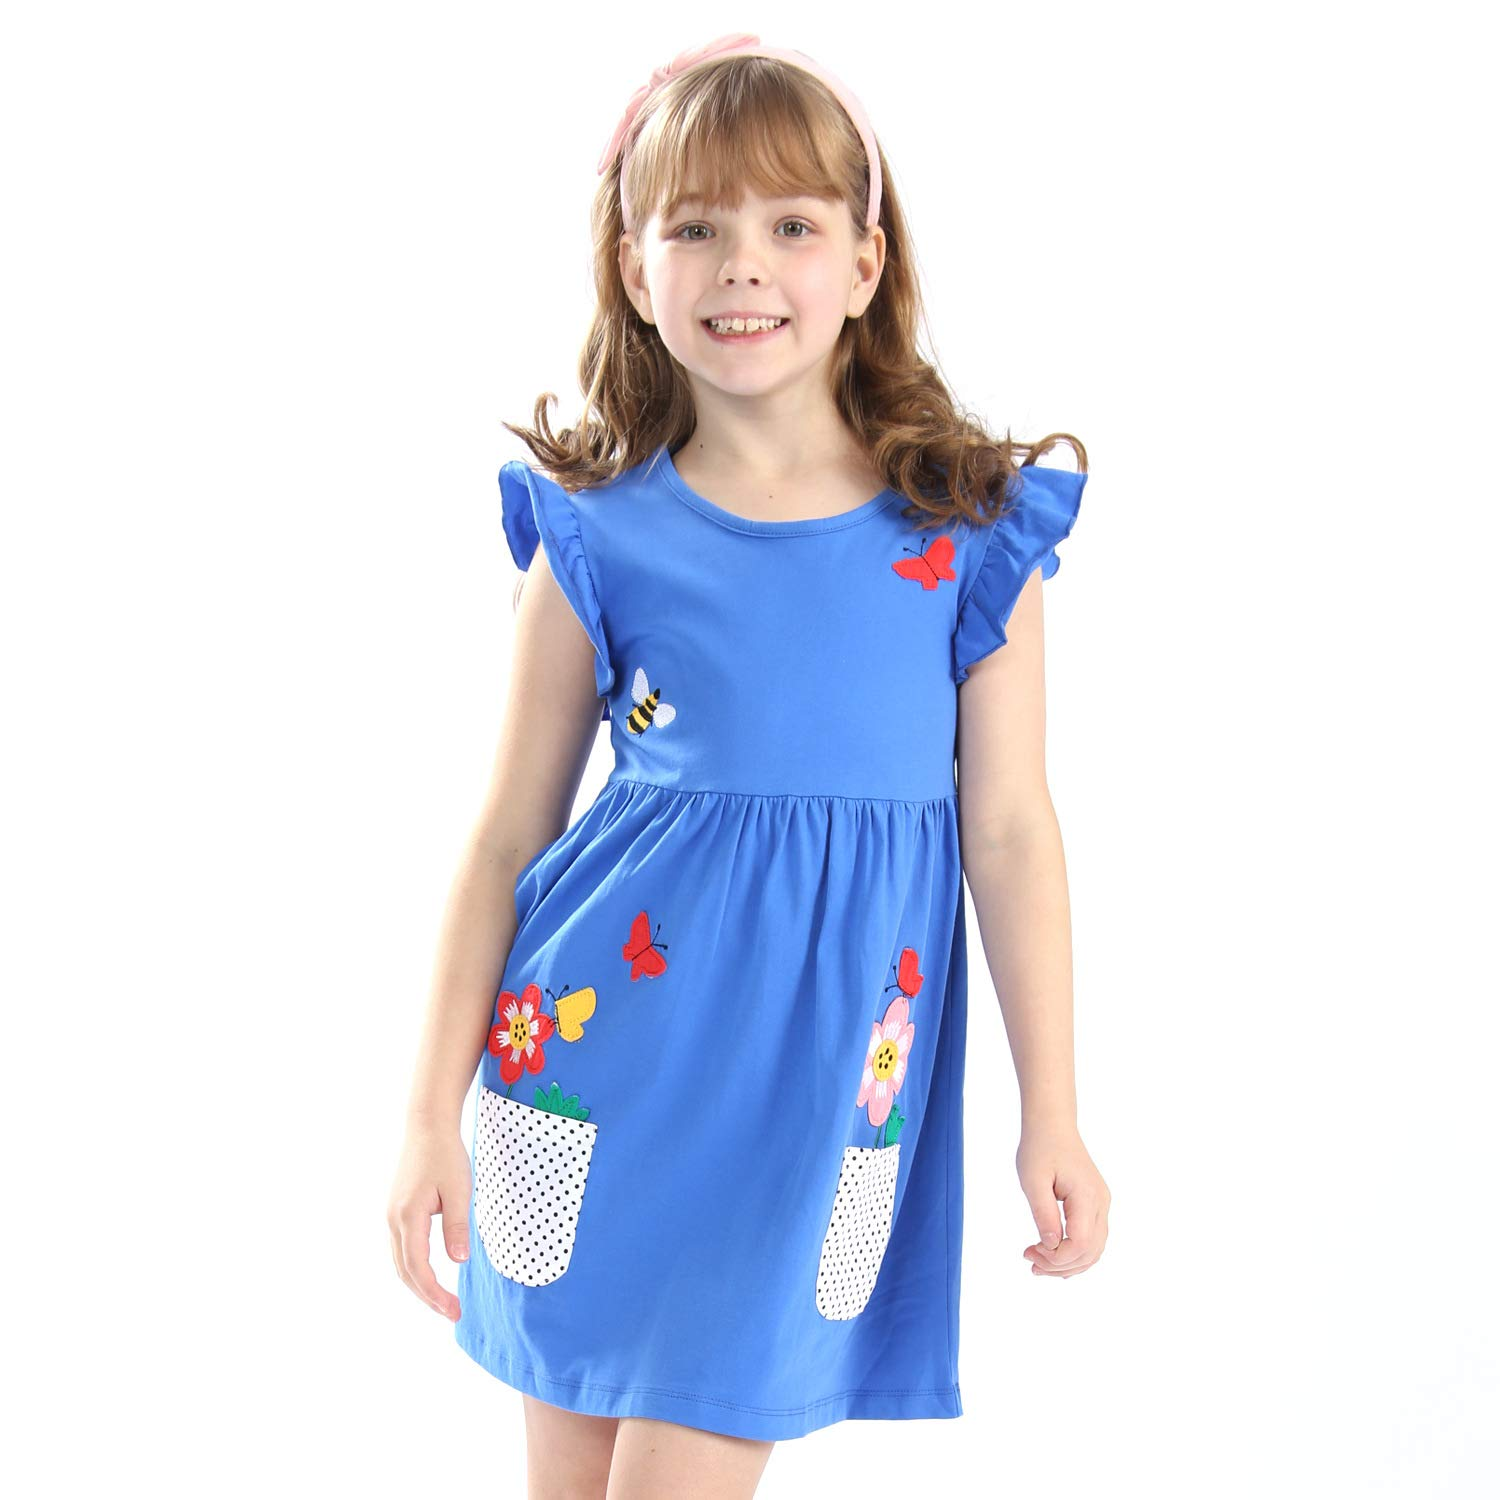 Mrsrui Little Girls Cotton Dress Short Sleeves Casual Summer Striped Printed Shirt Blue by Mrsrui